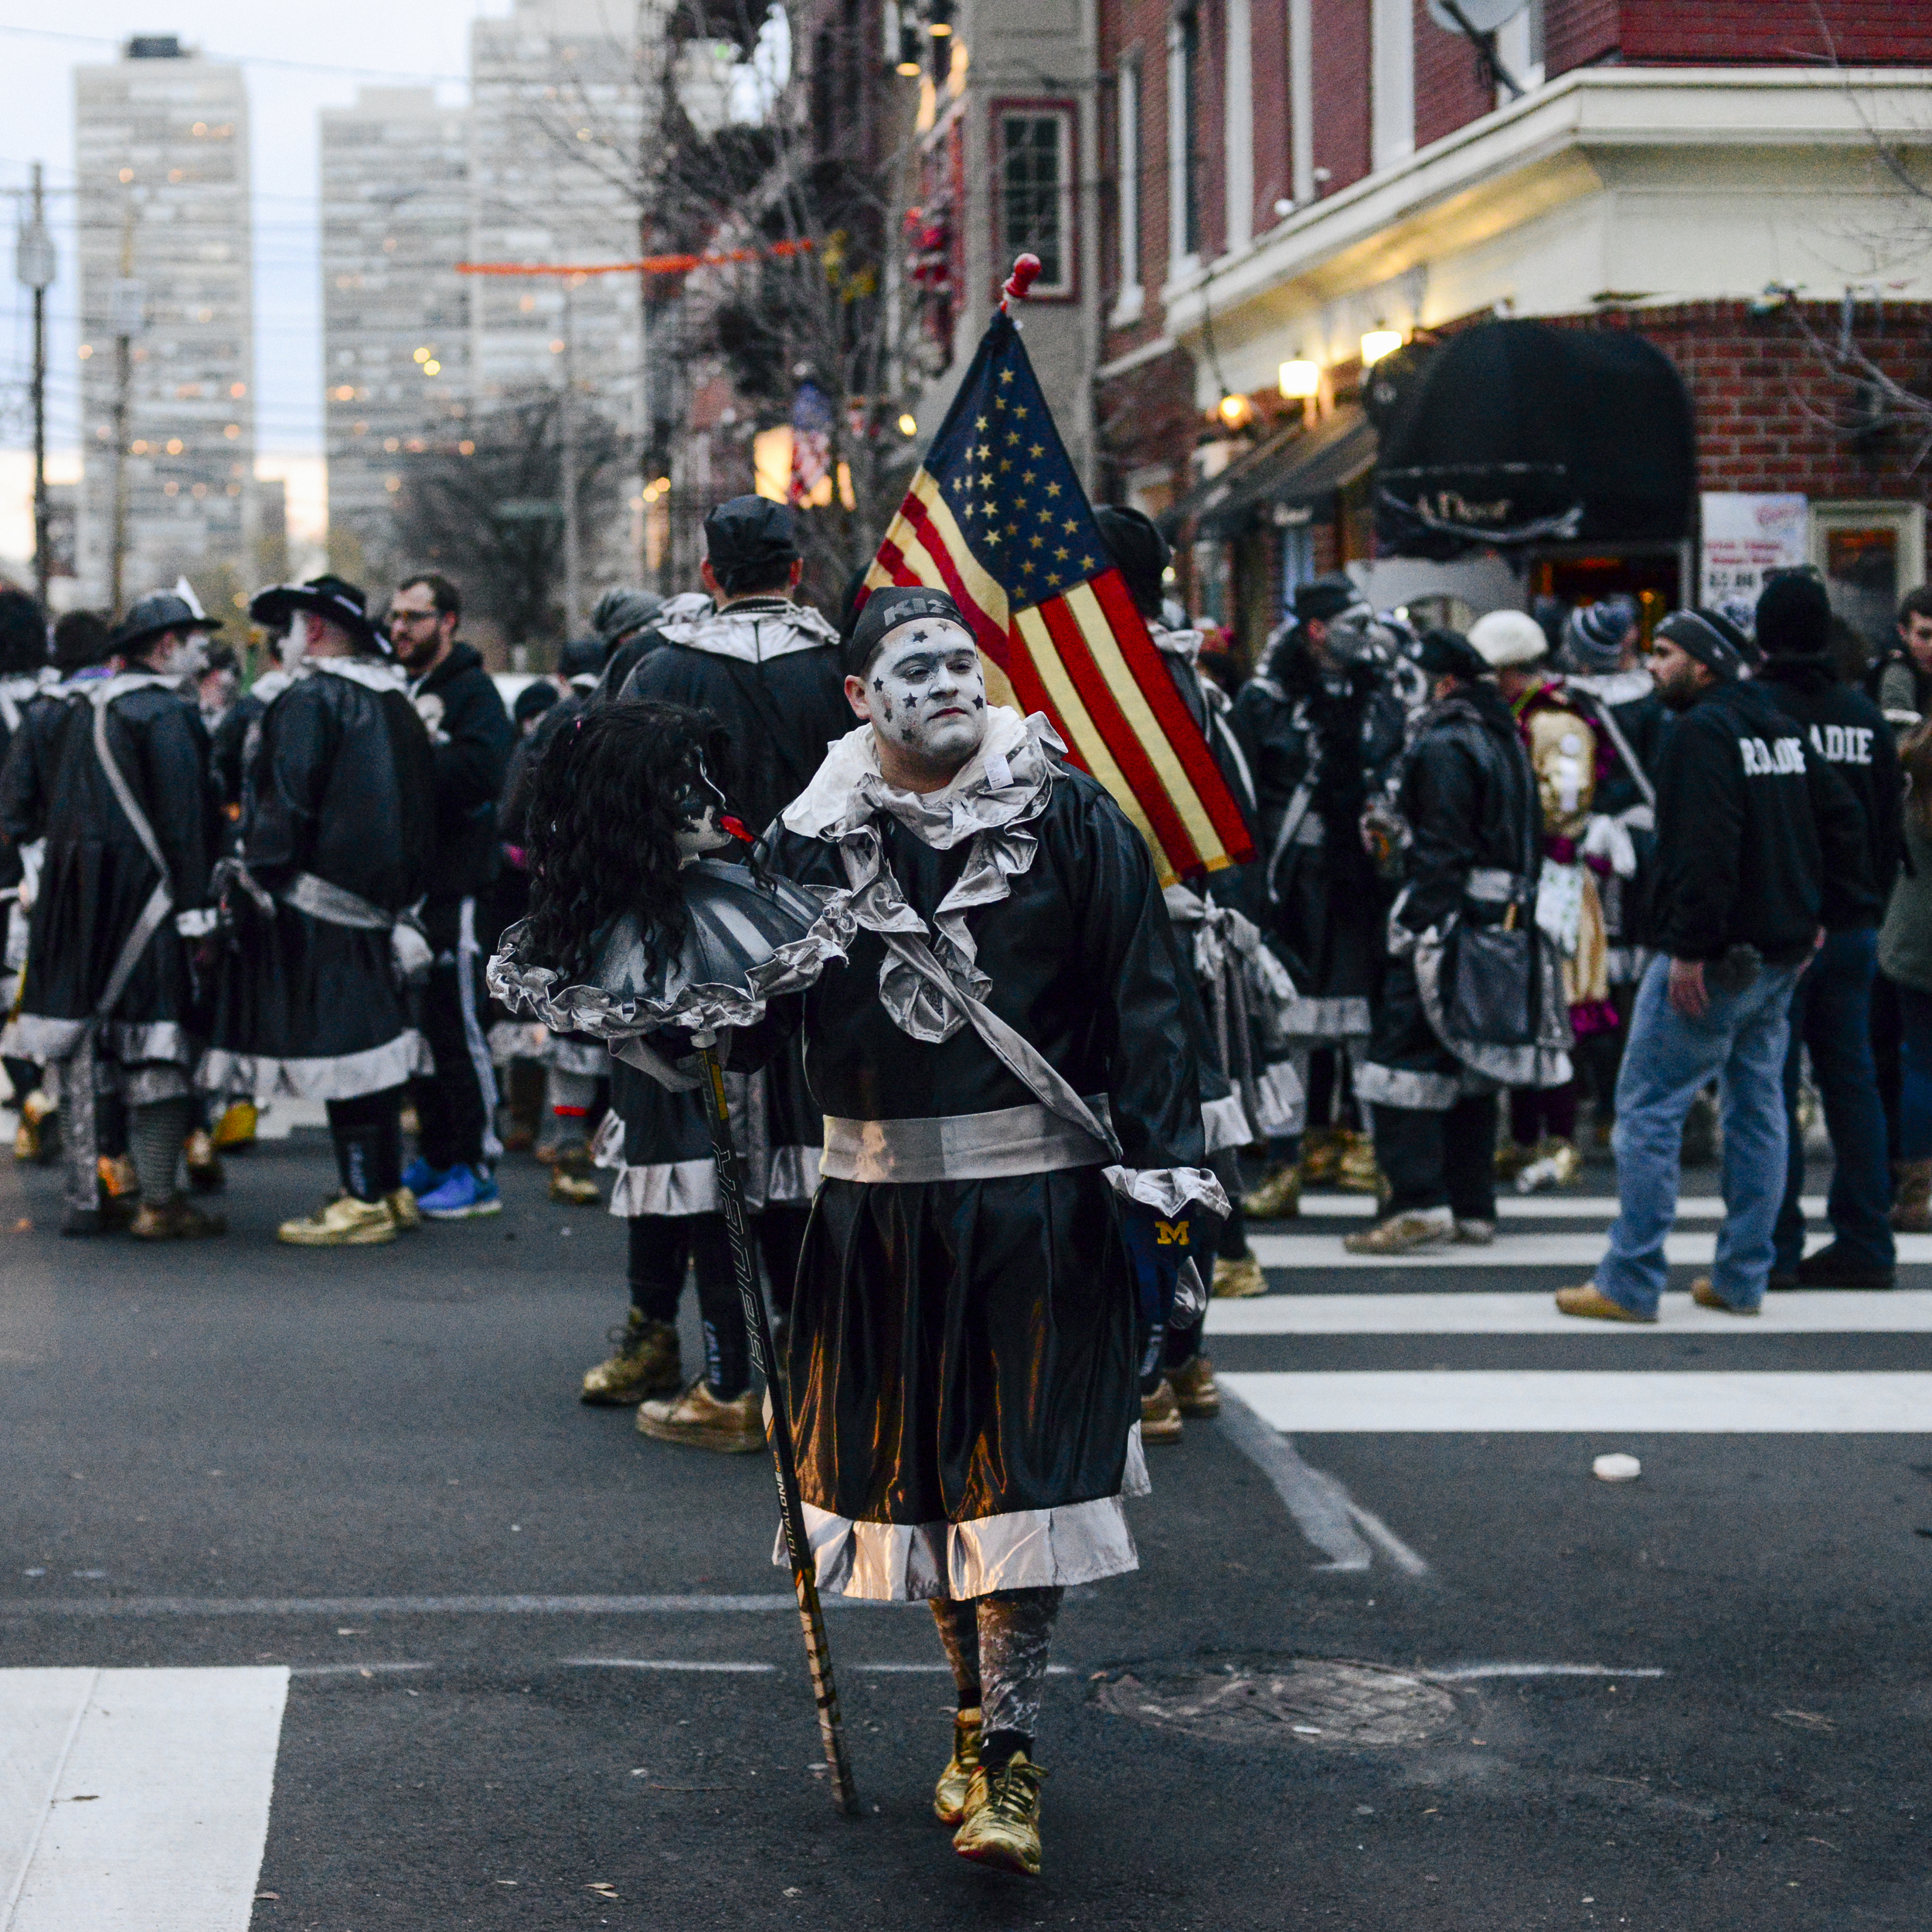 Mummers2016_BEST_146_EDIT_1.JPG